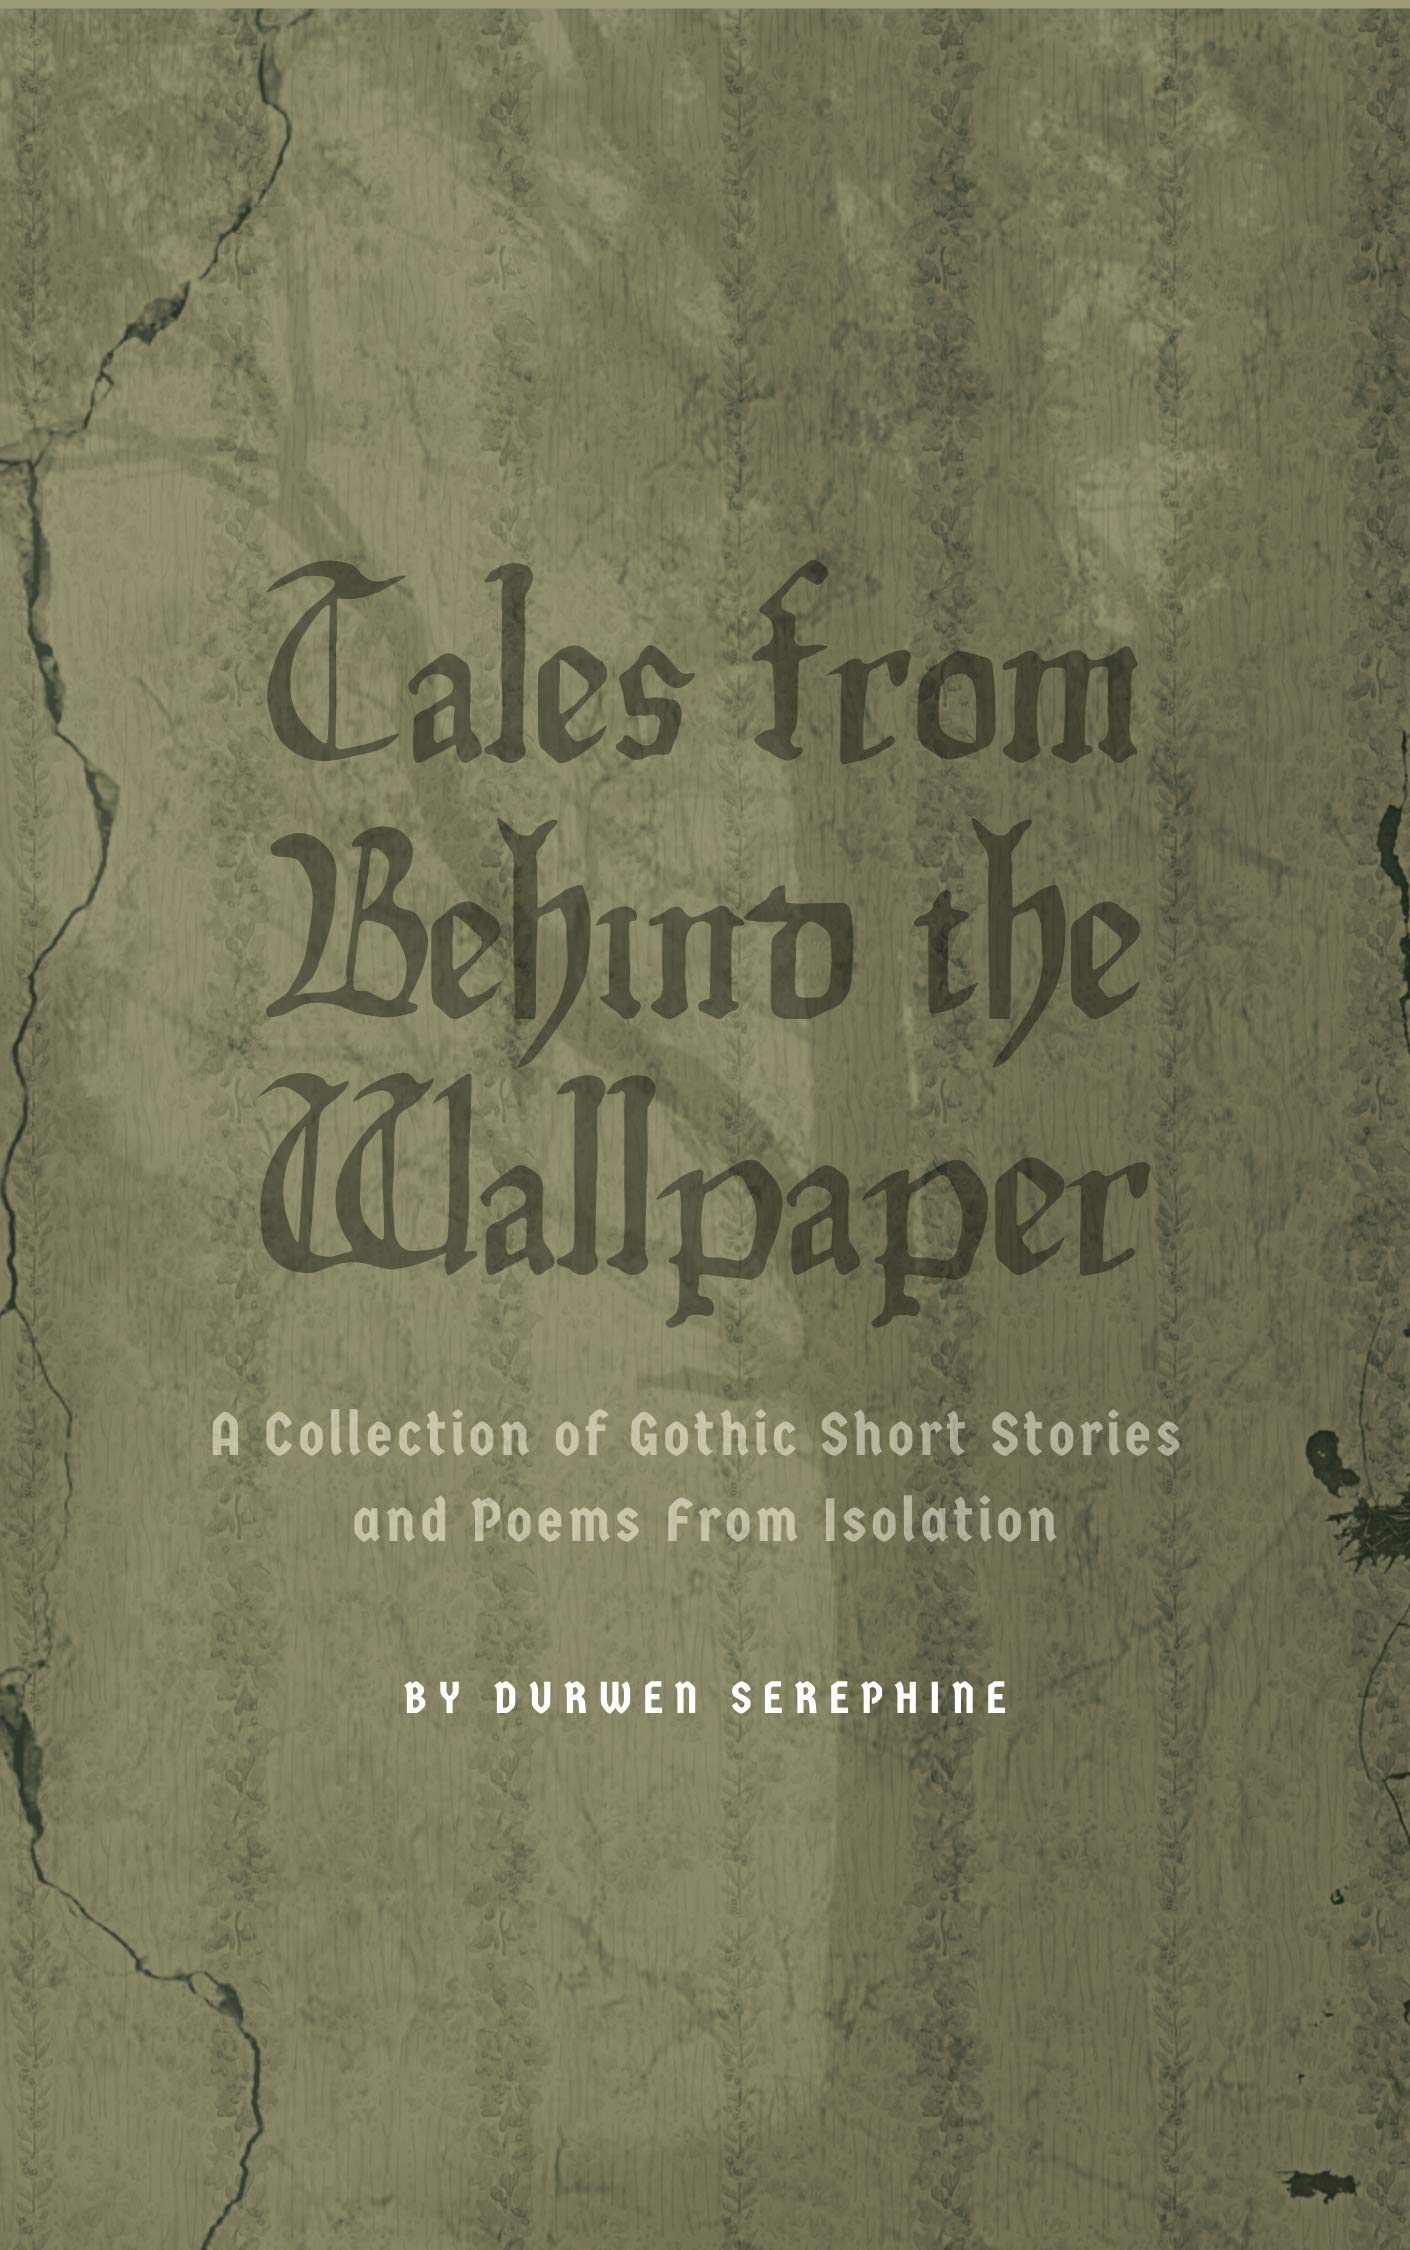 Tales from Behind the Wallpaper: A Collection of Gothic Short Stories and Poems from Isolation